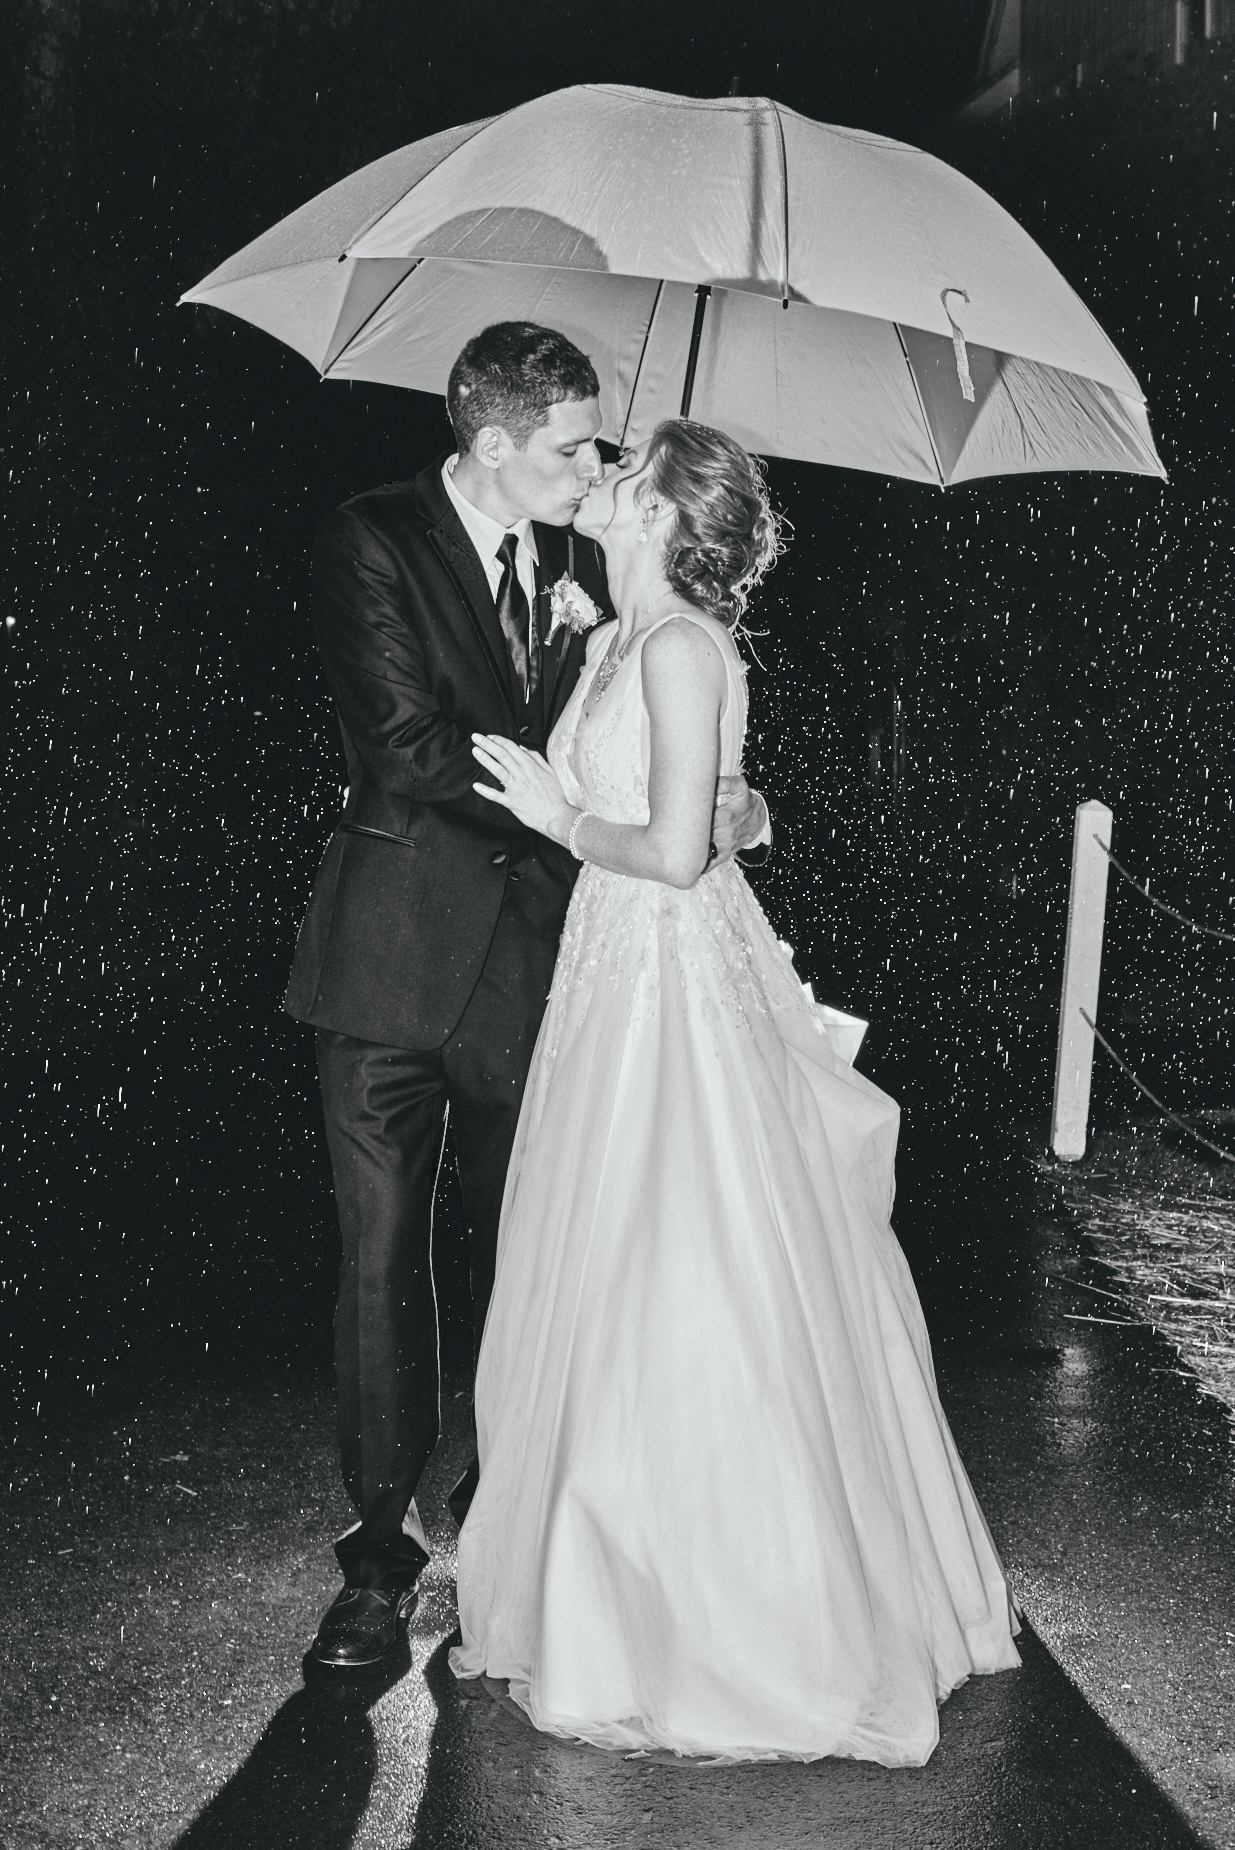 Wedding photography by Cate Bligh | Rainy day wedding in The White Mountain National Forest at Waterville Valley Resort in New Hampshire.